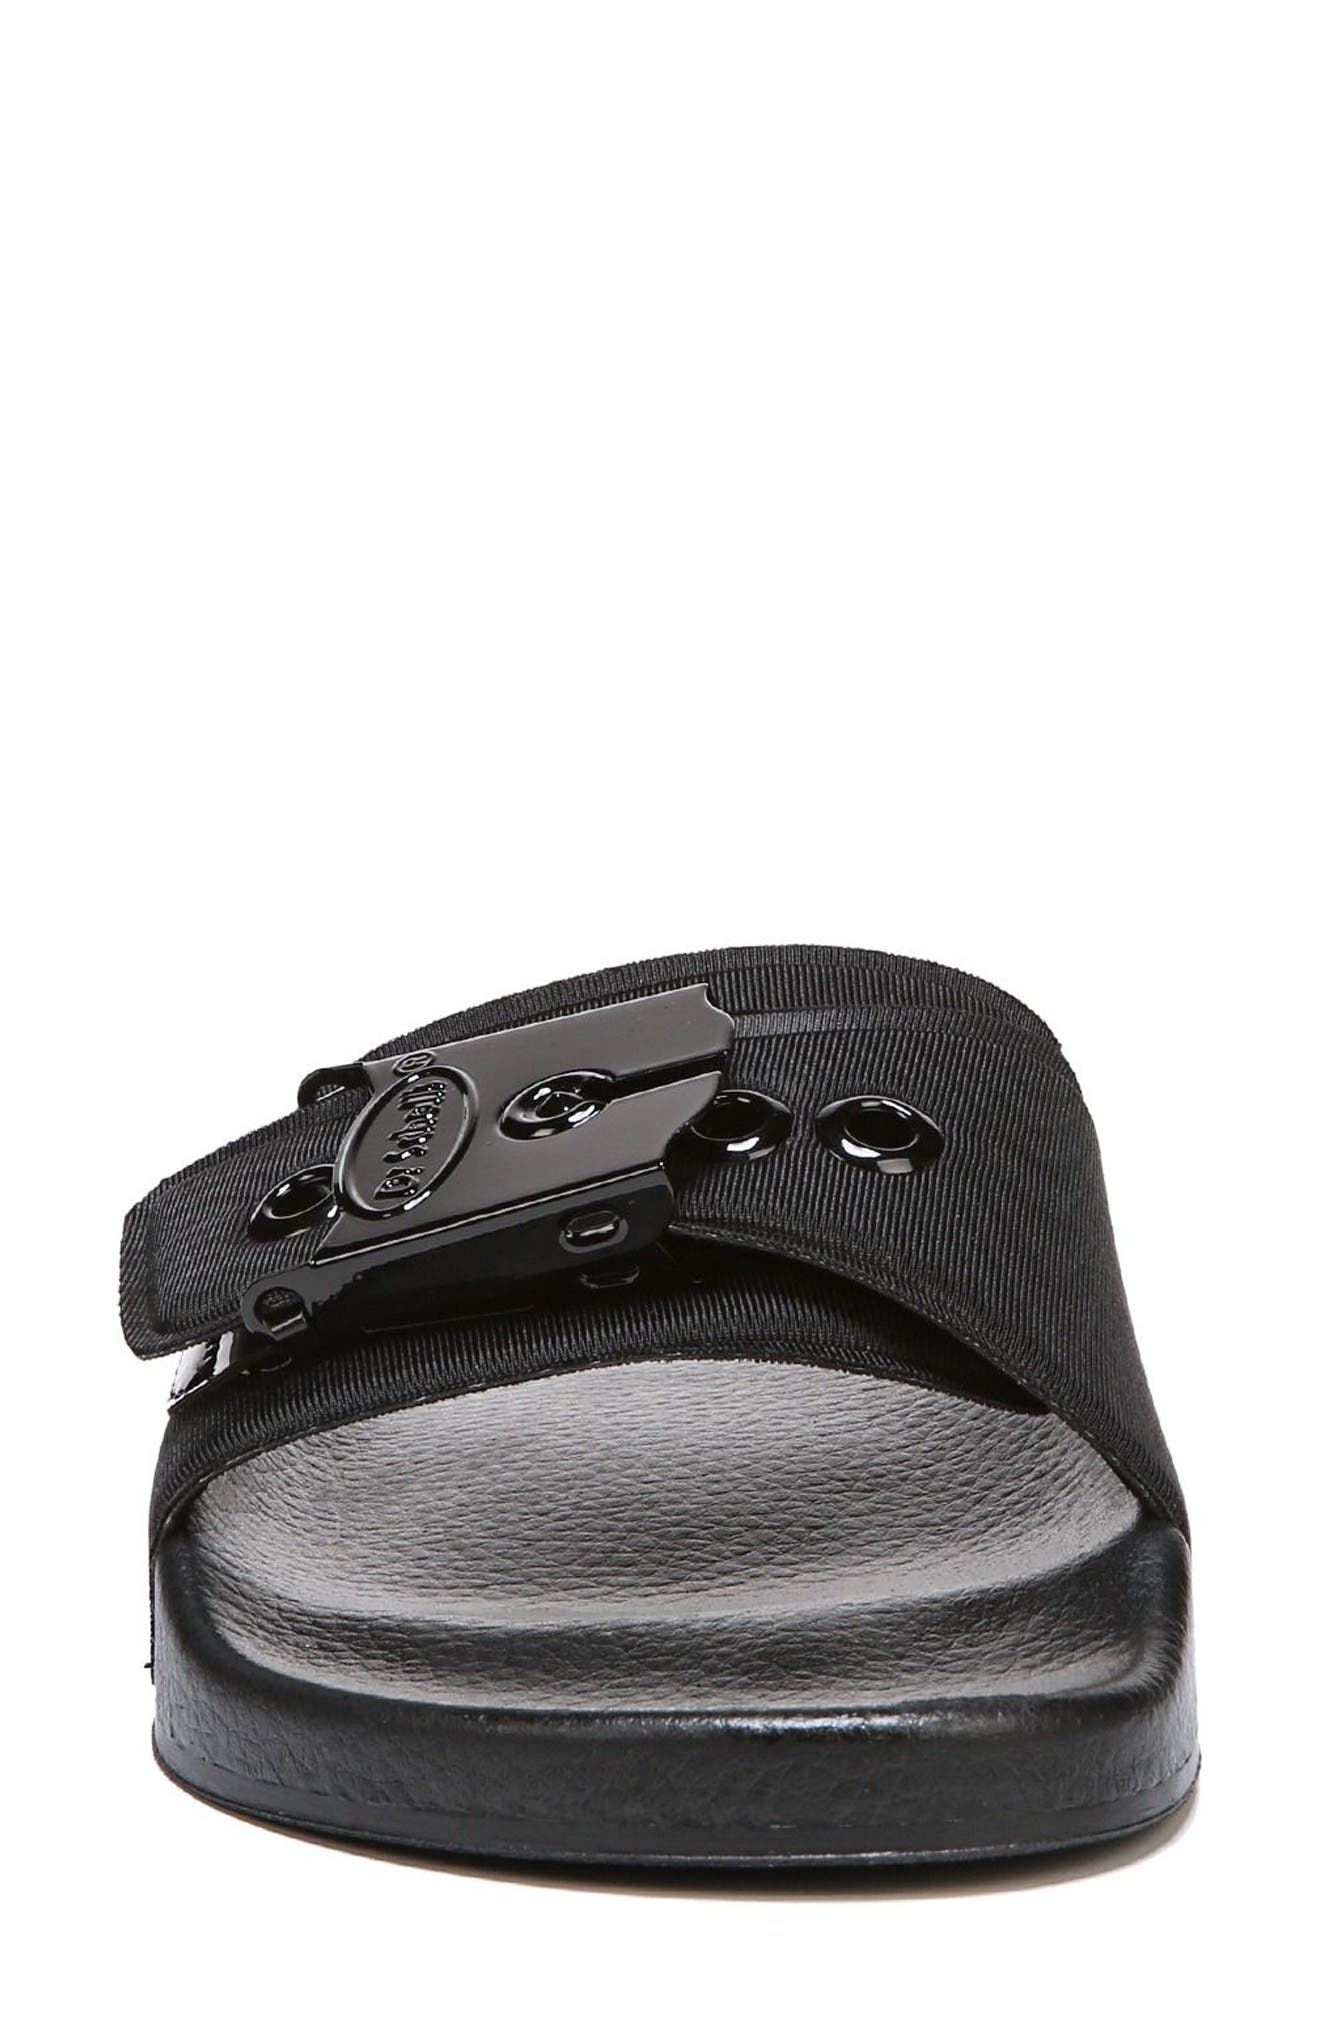 Original Pool Slide Sandal,                             Alternate thumbnail 4, color,                             BLACK